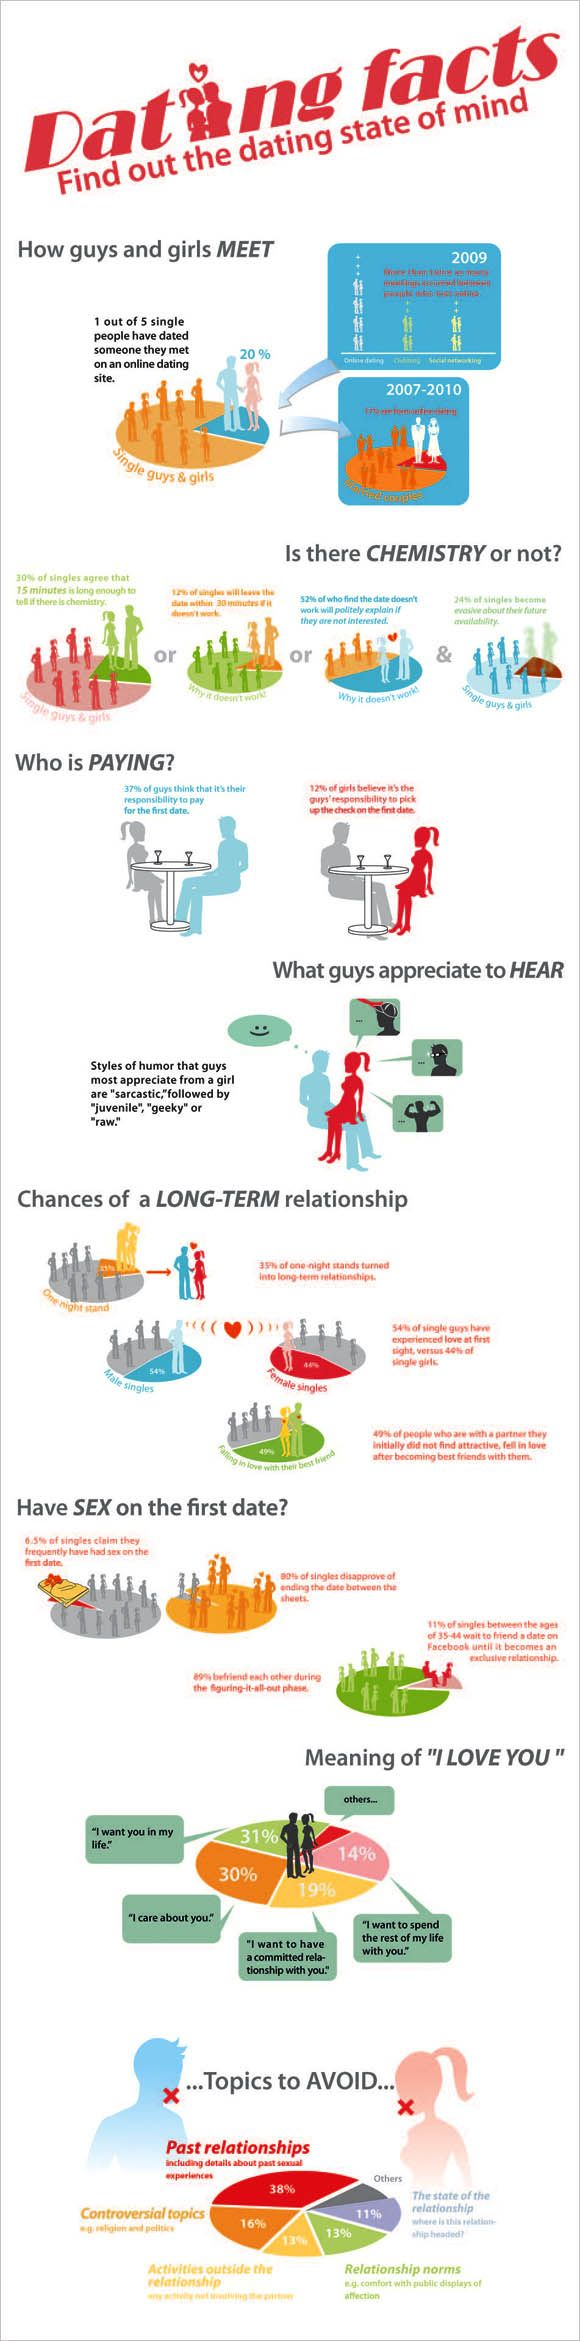 Dating Facts infographic http://www.twosugars.com/ online dating  infographics